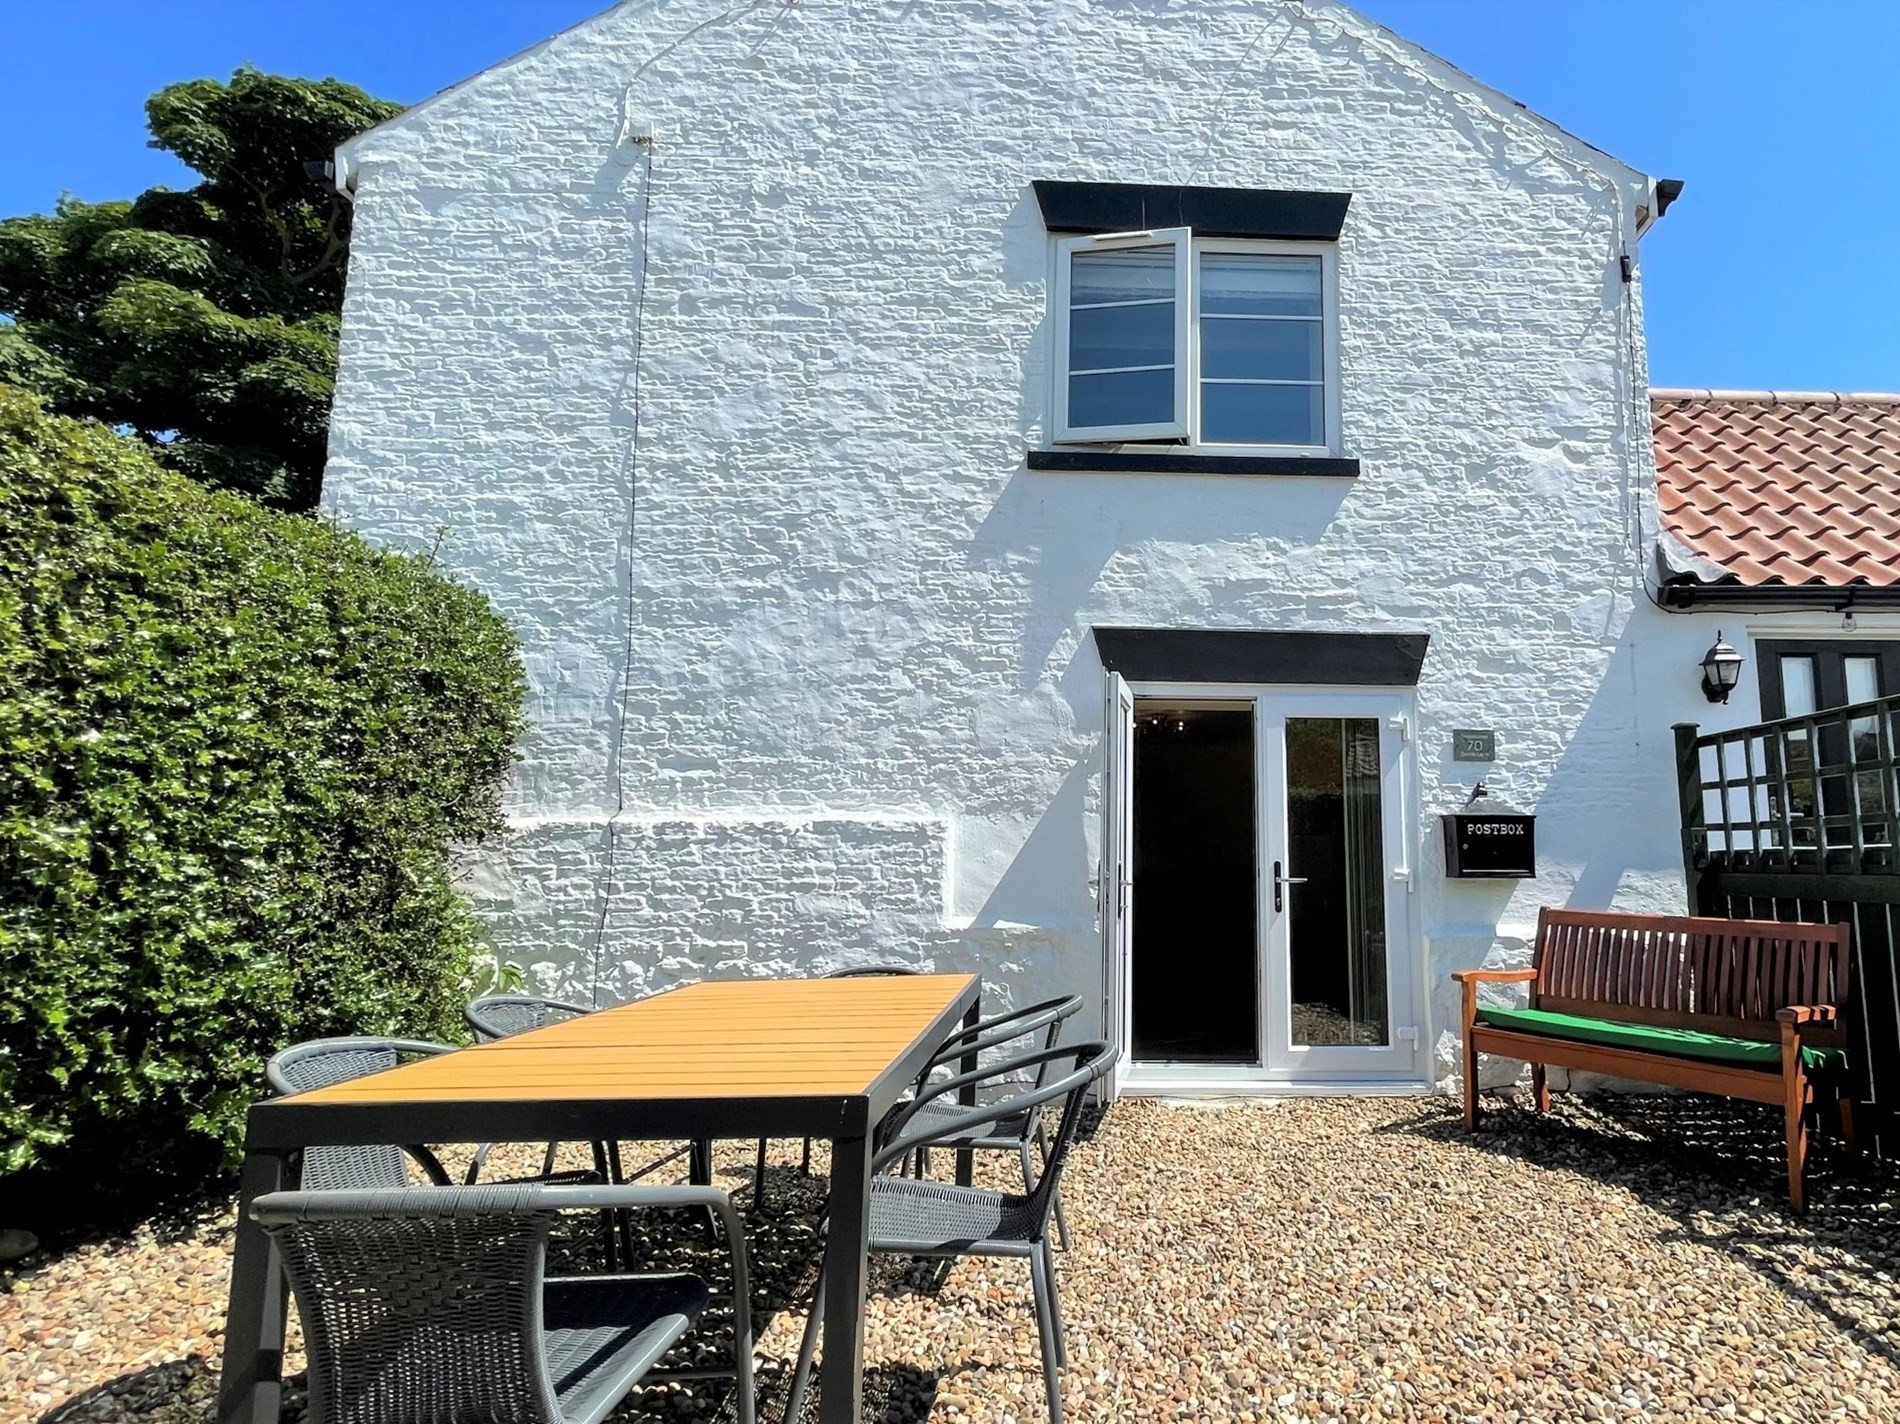 2 Bedroom Cottage in Barmston, The Lake District and Cumbria